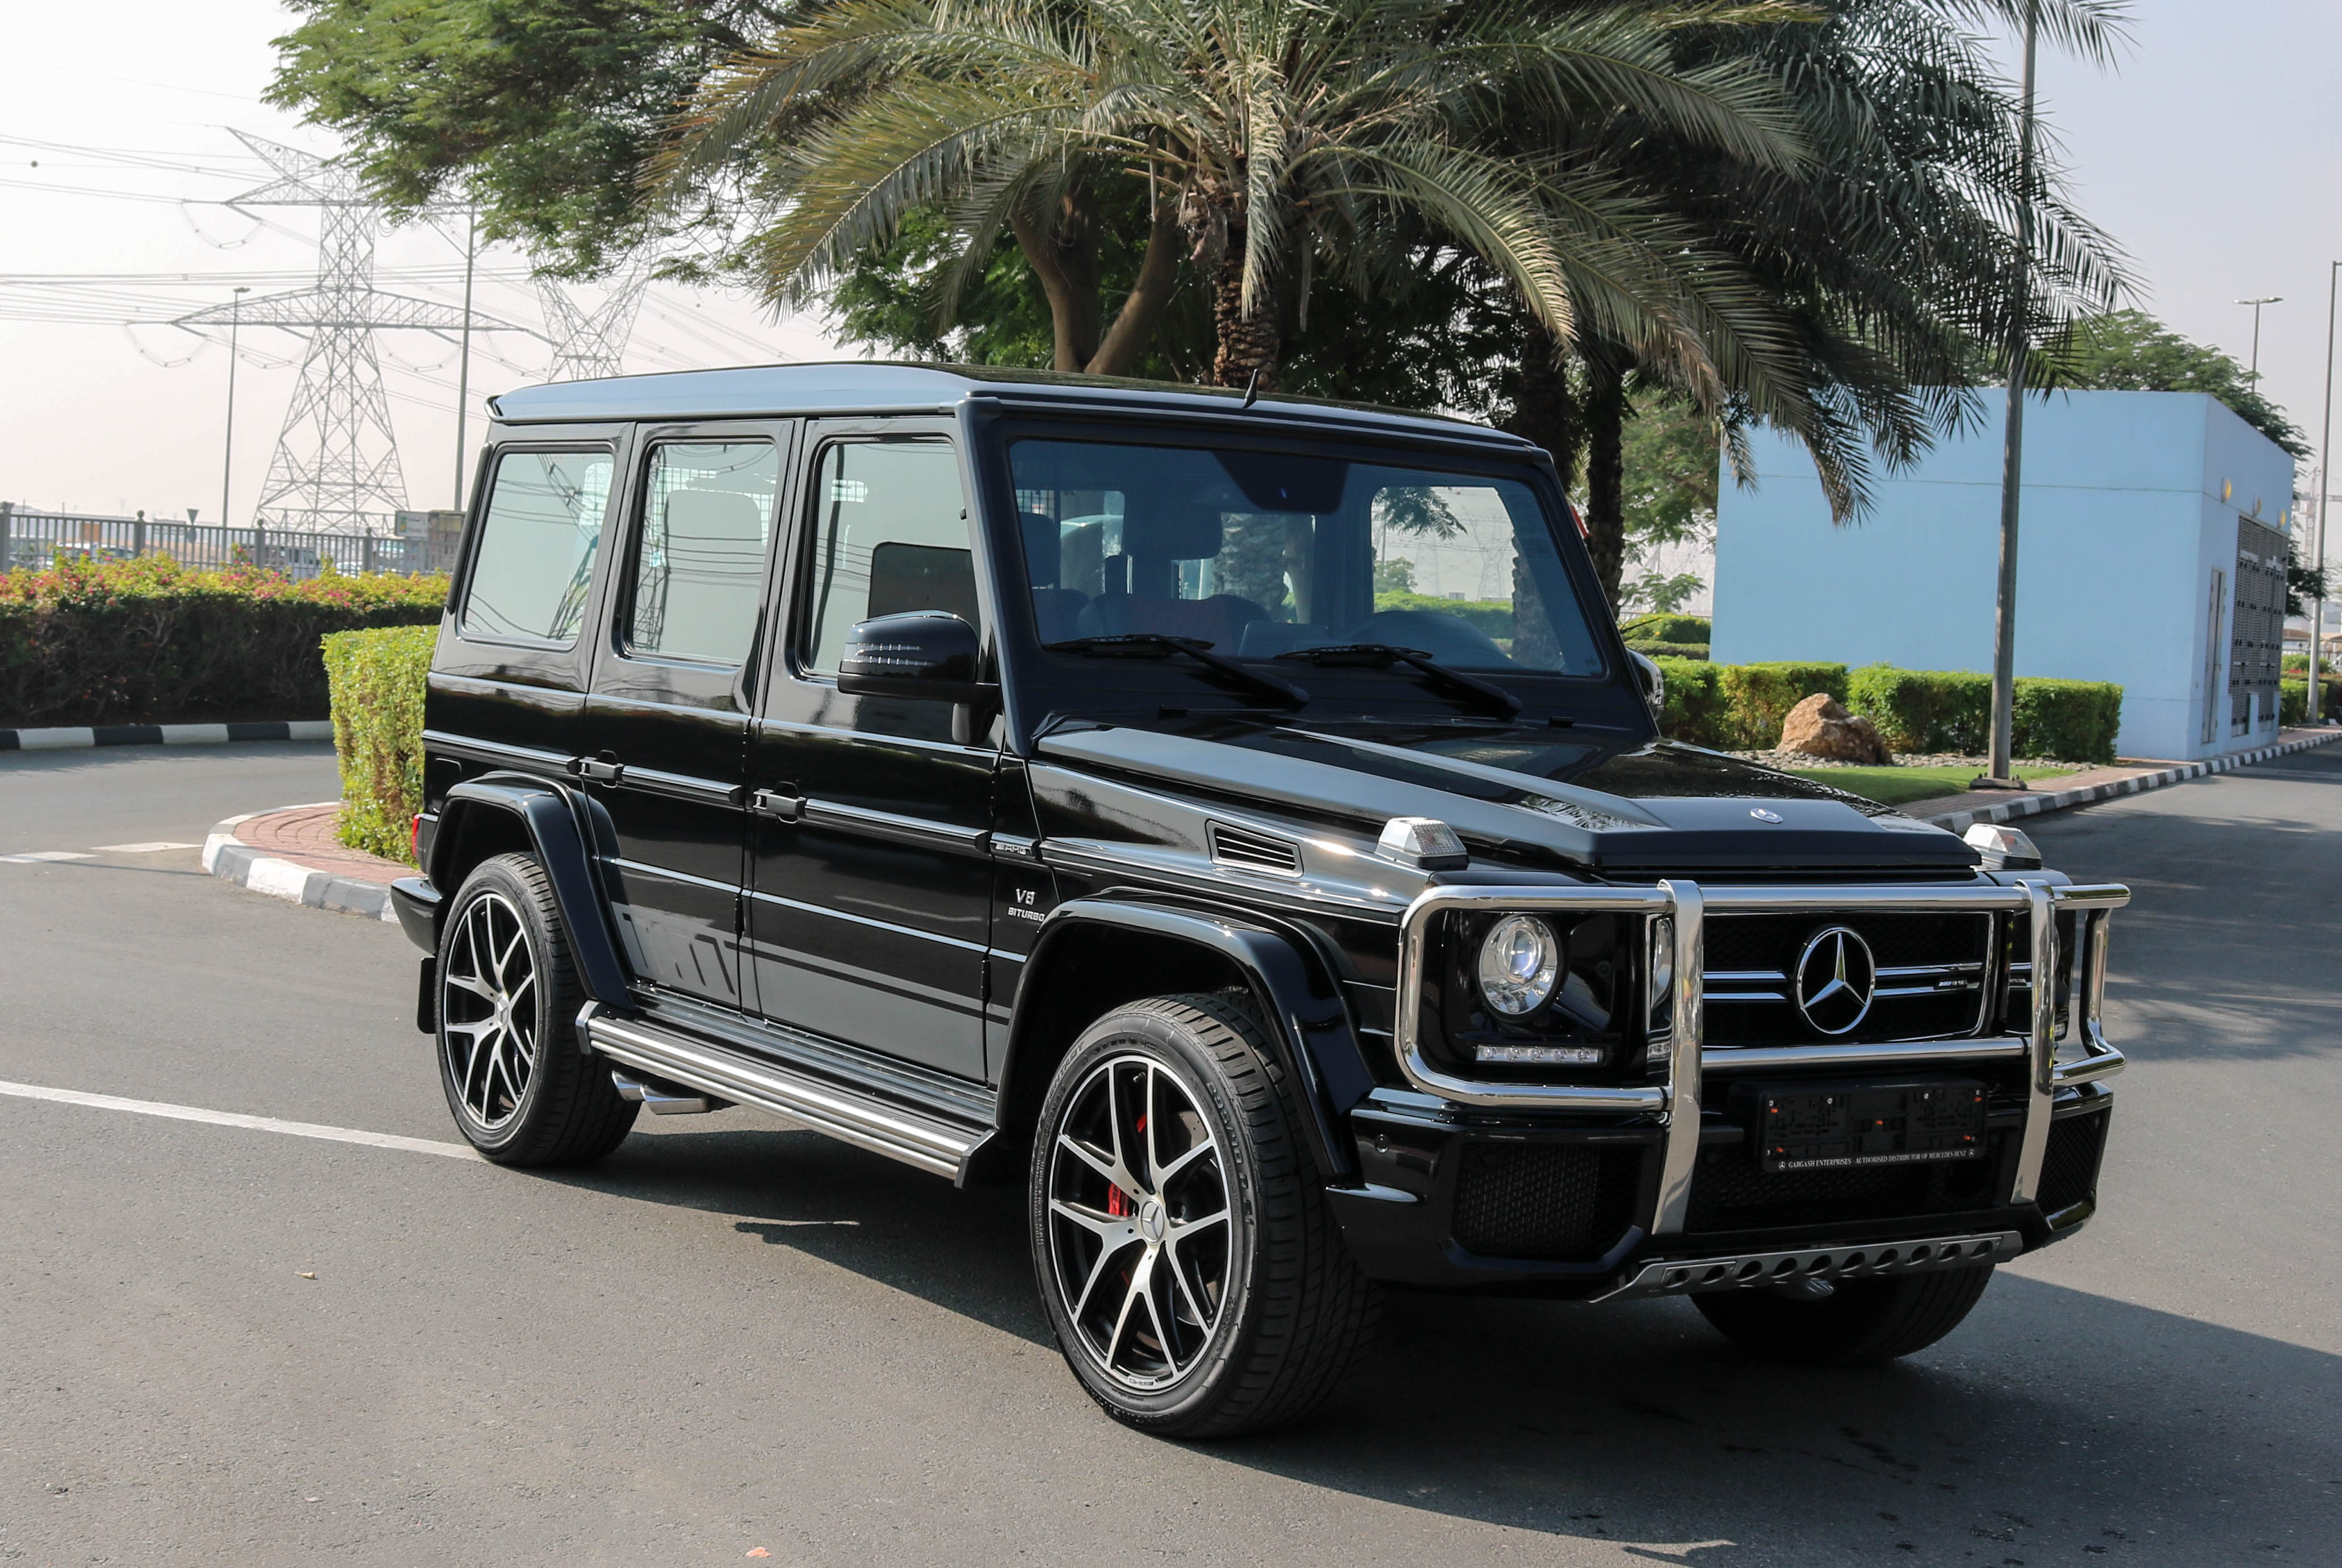 Mercedes benz g63 2017 gcc formula motors llc dubai for Best time of year to buy a mercedes benz